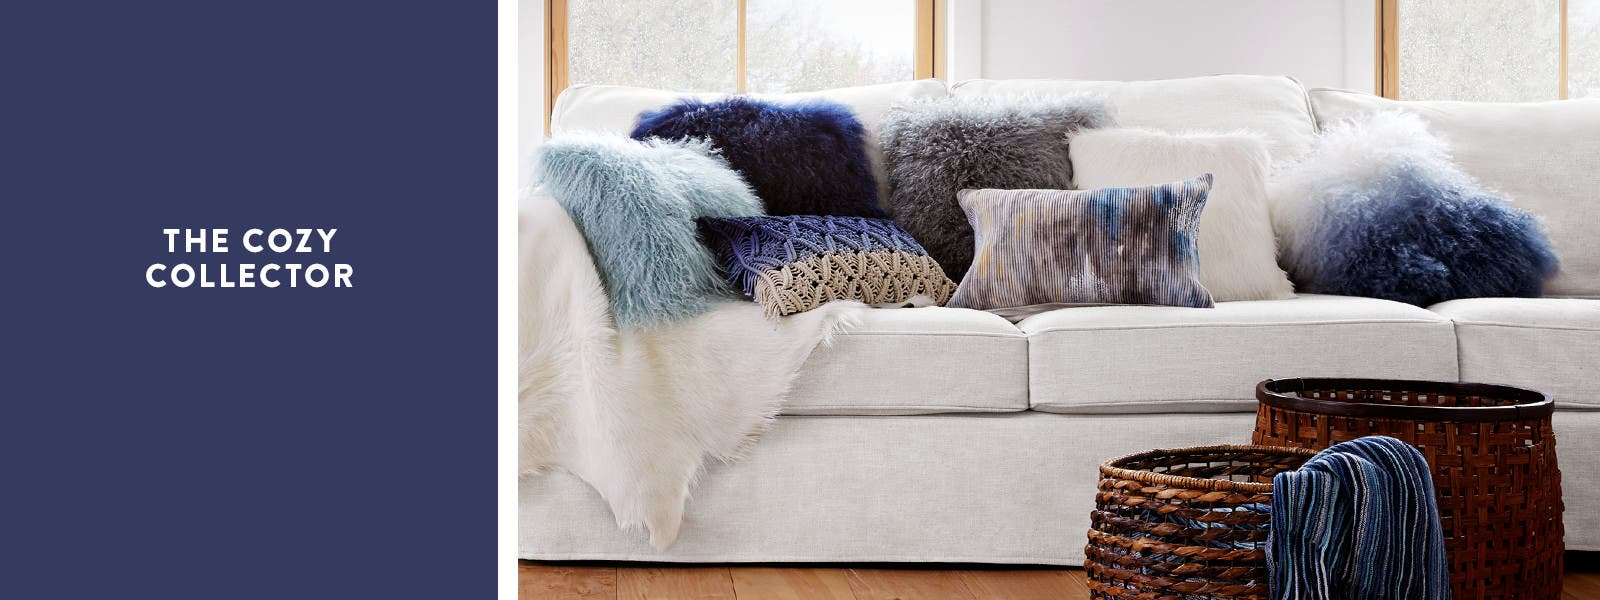 Home decor for the cozy collector.